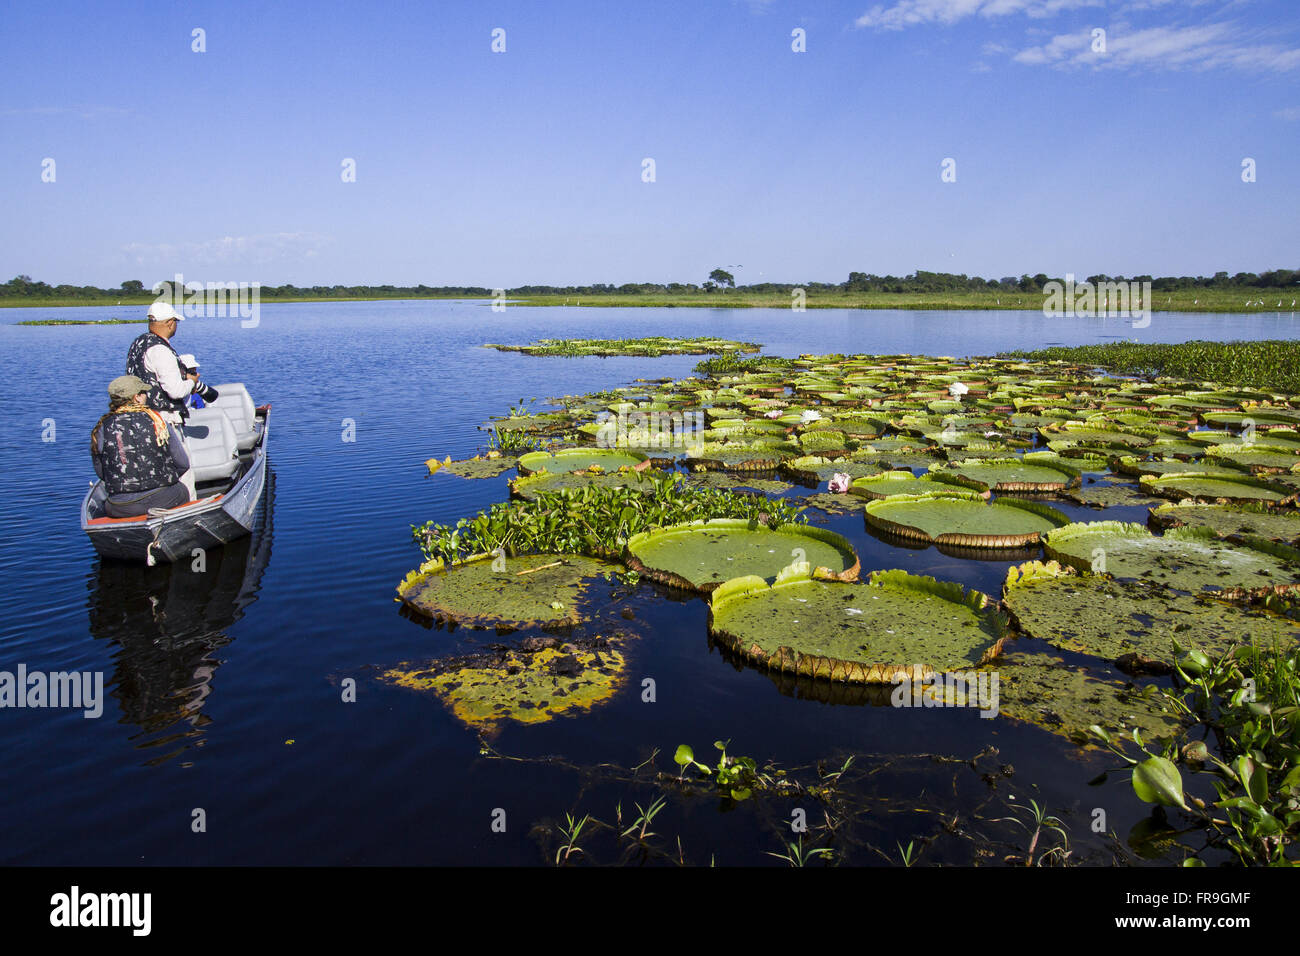 Ecotourists observe water lilies in the swamp - Victoria cruziana - Stock Image